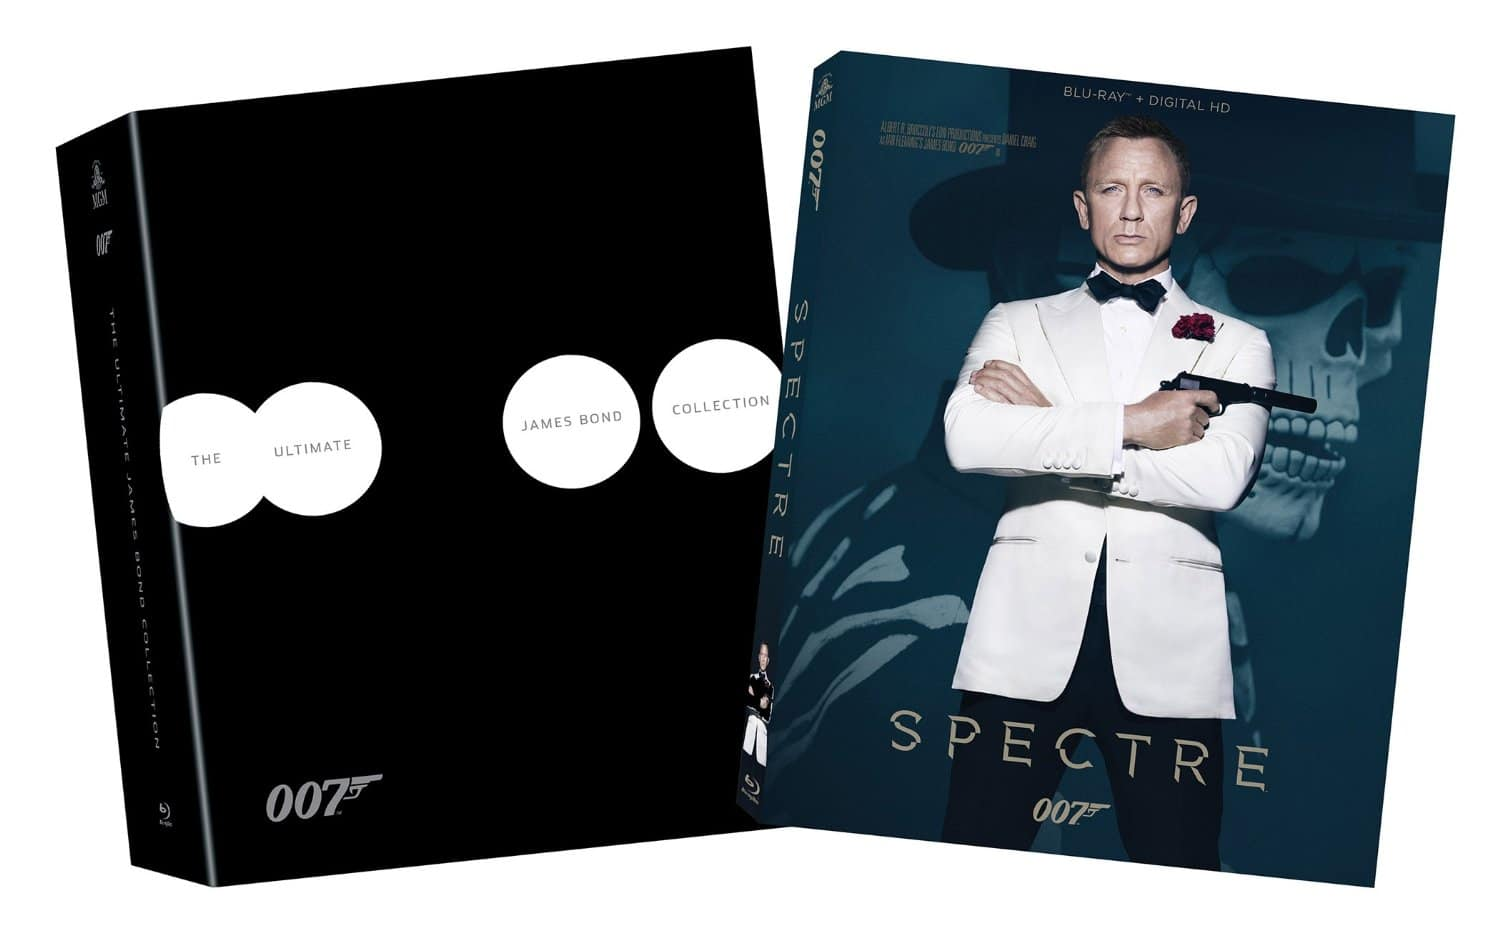 Amazon Prime Members: The Ultimate Bond Collection + Spectre Bundle (Blu-Ray) $89.99 + Free Shipping